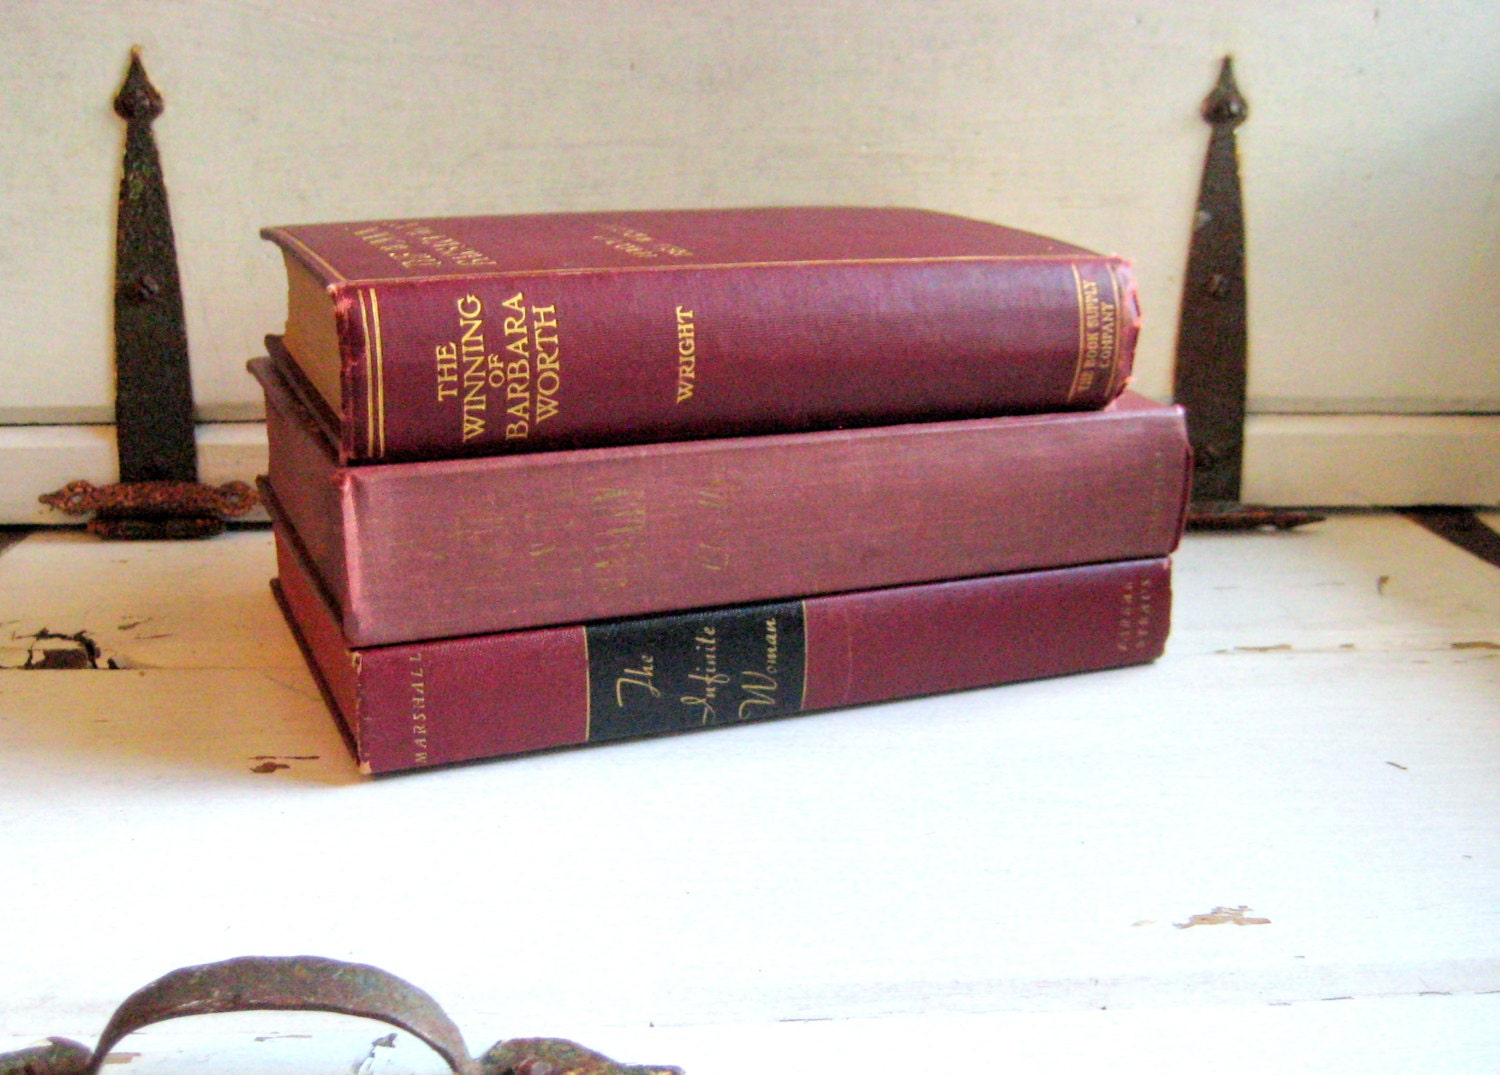 Shabby style vintage book collection, 3 burgundy and gold dramatic novels including How Green was my Valley - jensdreamvintage